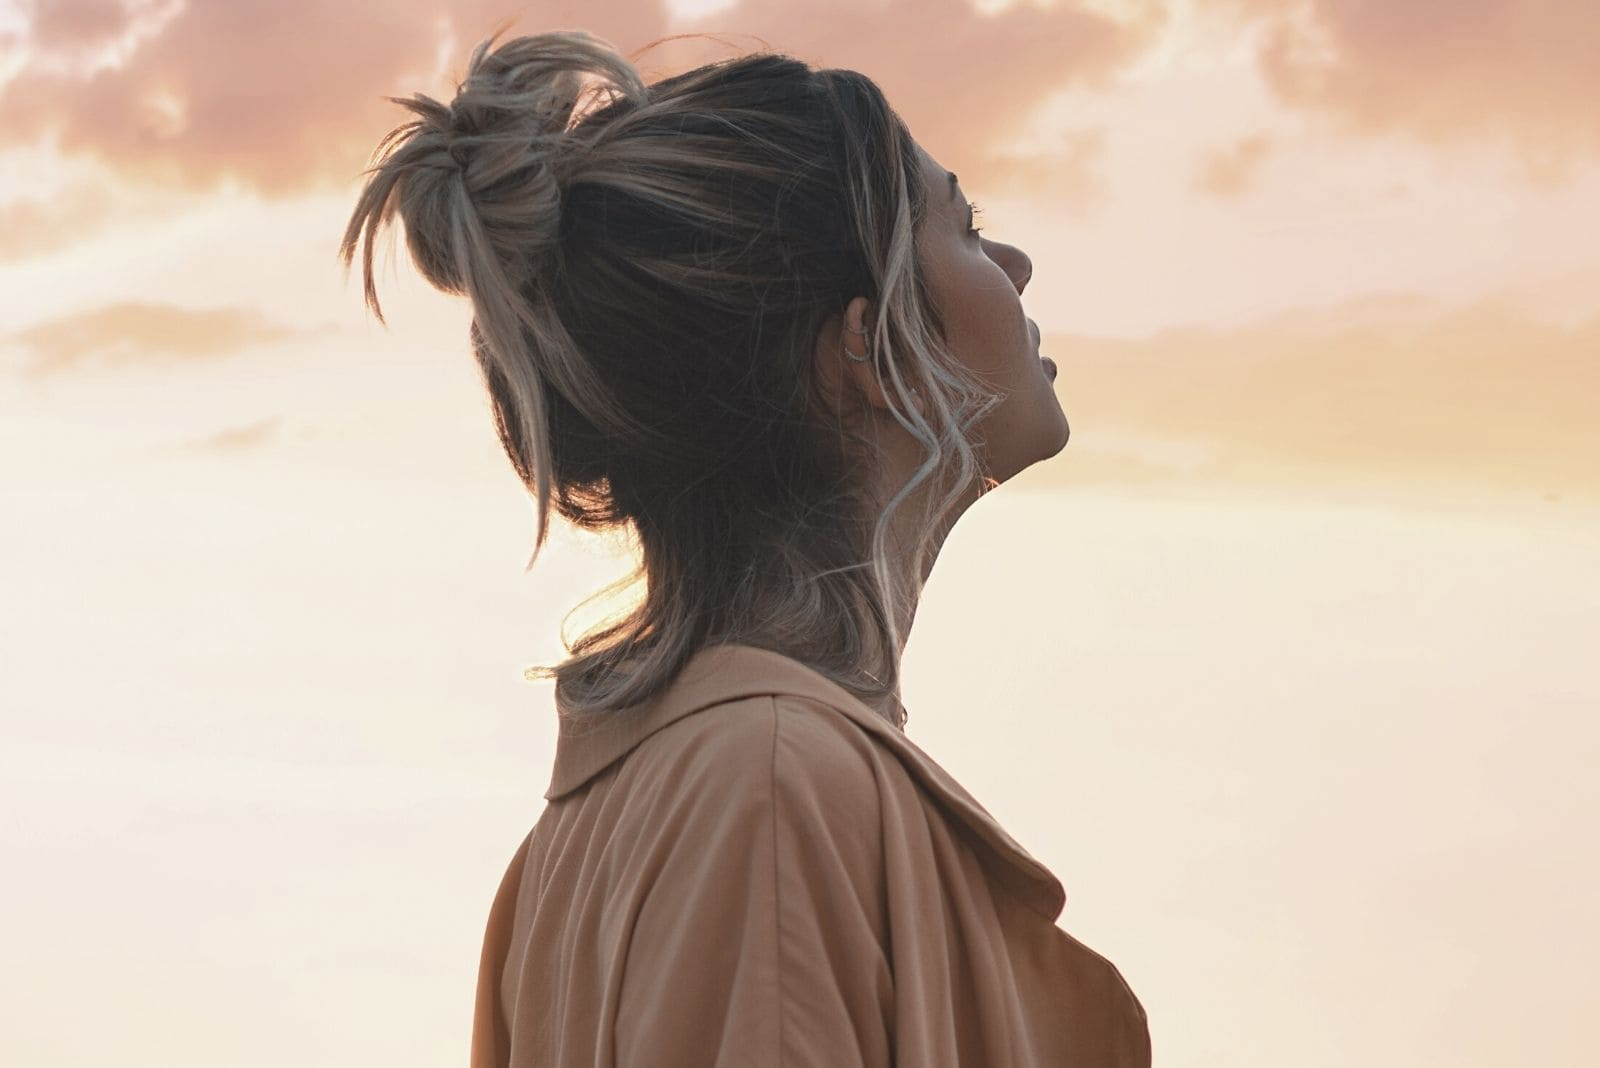 woman looking up the sky in sideview close up photography